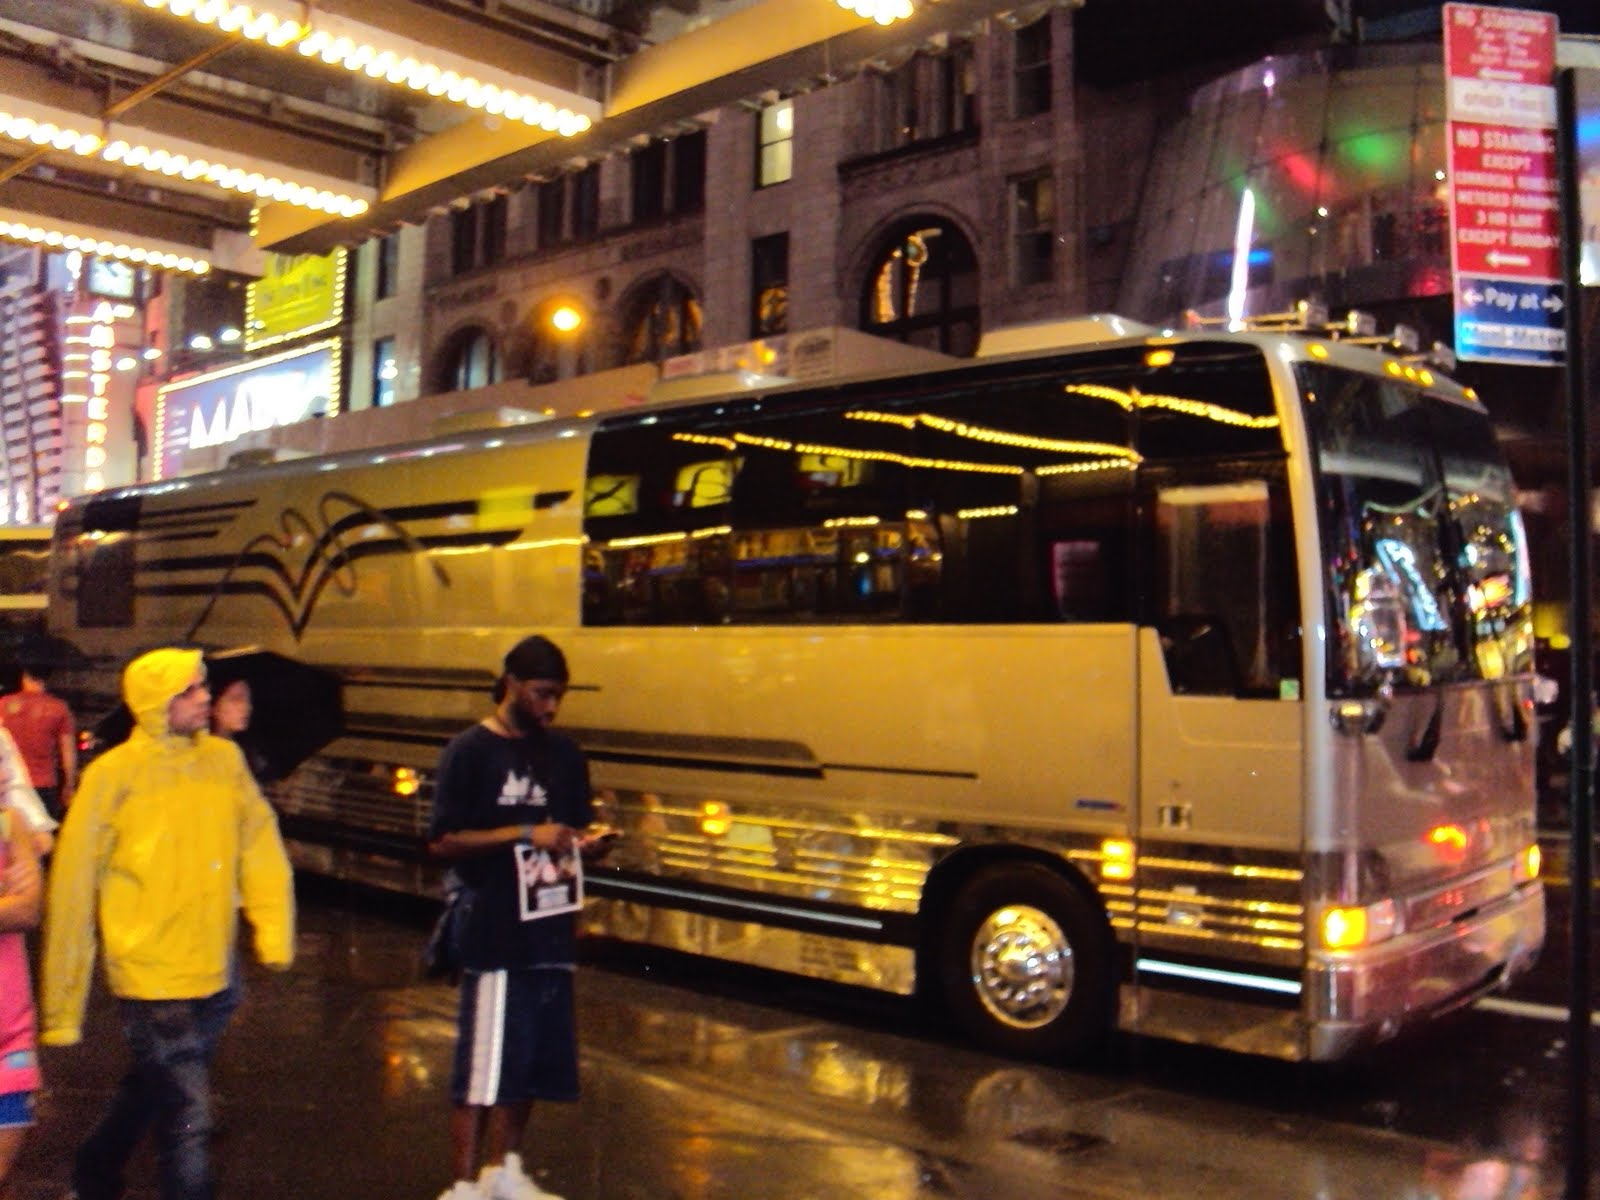 Justin Bieber Tour Bus Inside - Bing images